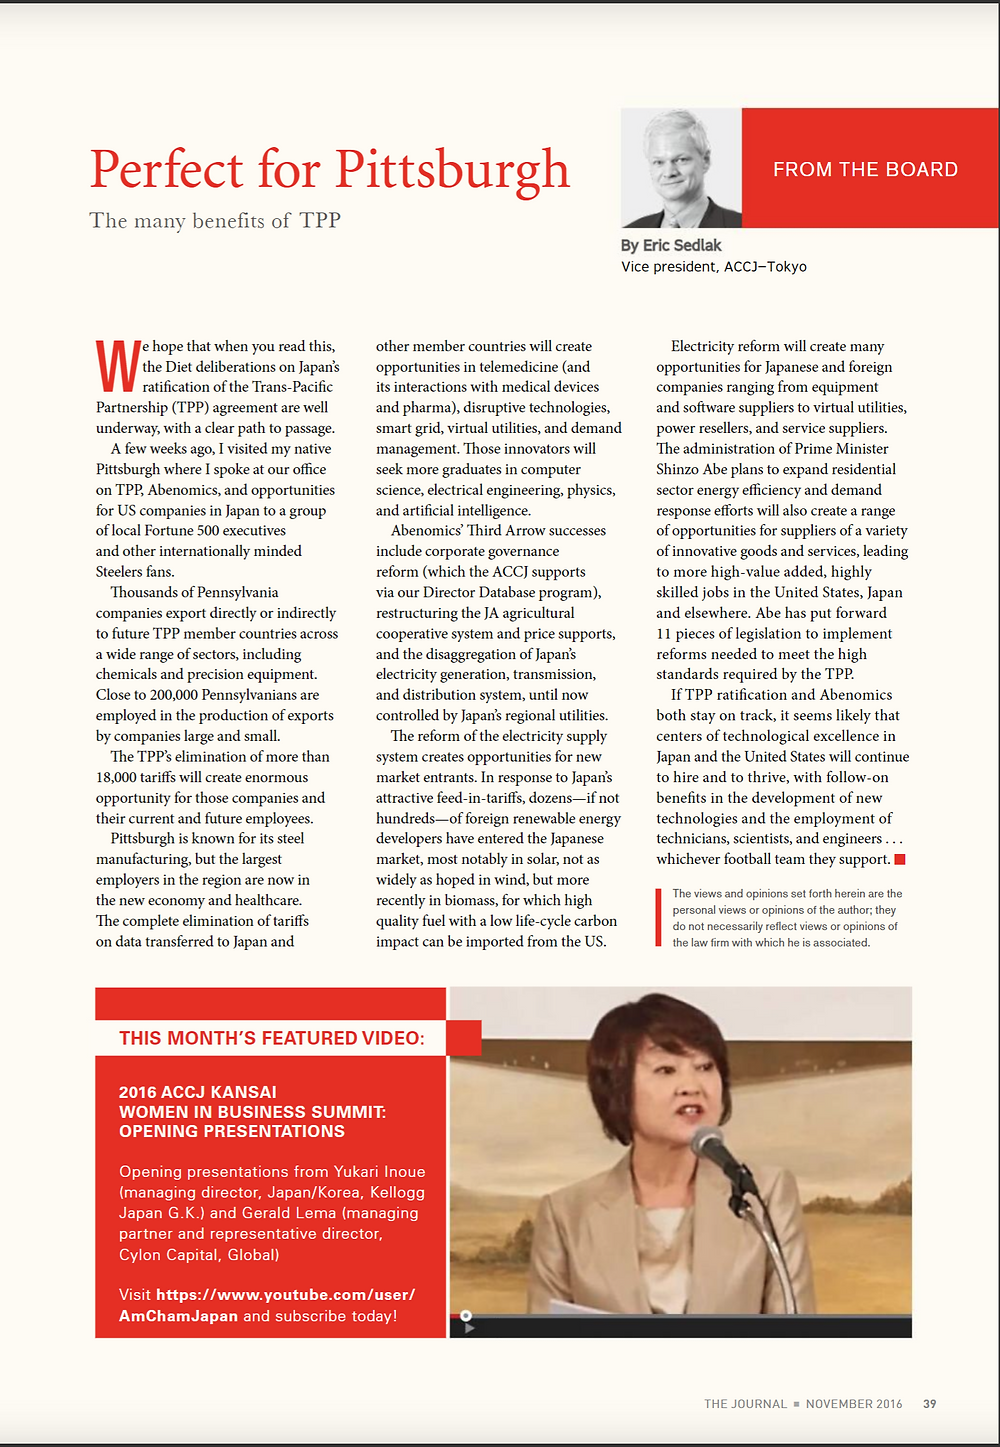 ACCJ the Journal November 2016 - Page 39  This month's featured video:  Opening presentations from Yukari Inoue (Managing Director, Japan/Korea, Kellog Japan G.K.) and Gerald Lema (Managing Partner and Representative Directory, Cylon Capital, Global).   https://www.youtube.com/watch?v=5XSbYge7_rE    The ACCJ - 在日米国商工会議所  http://www.accj.or.jp